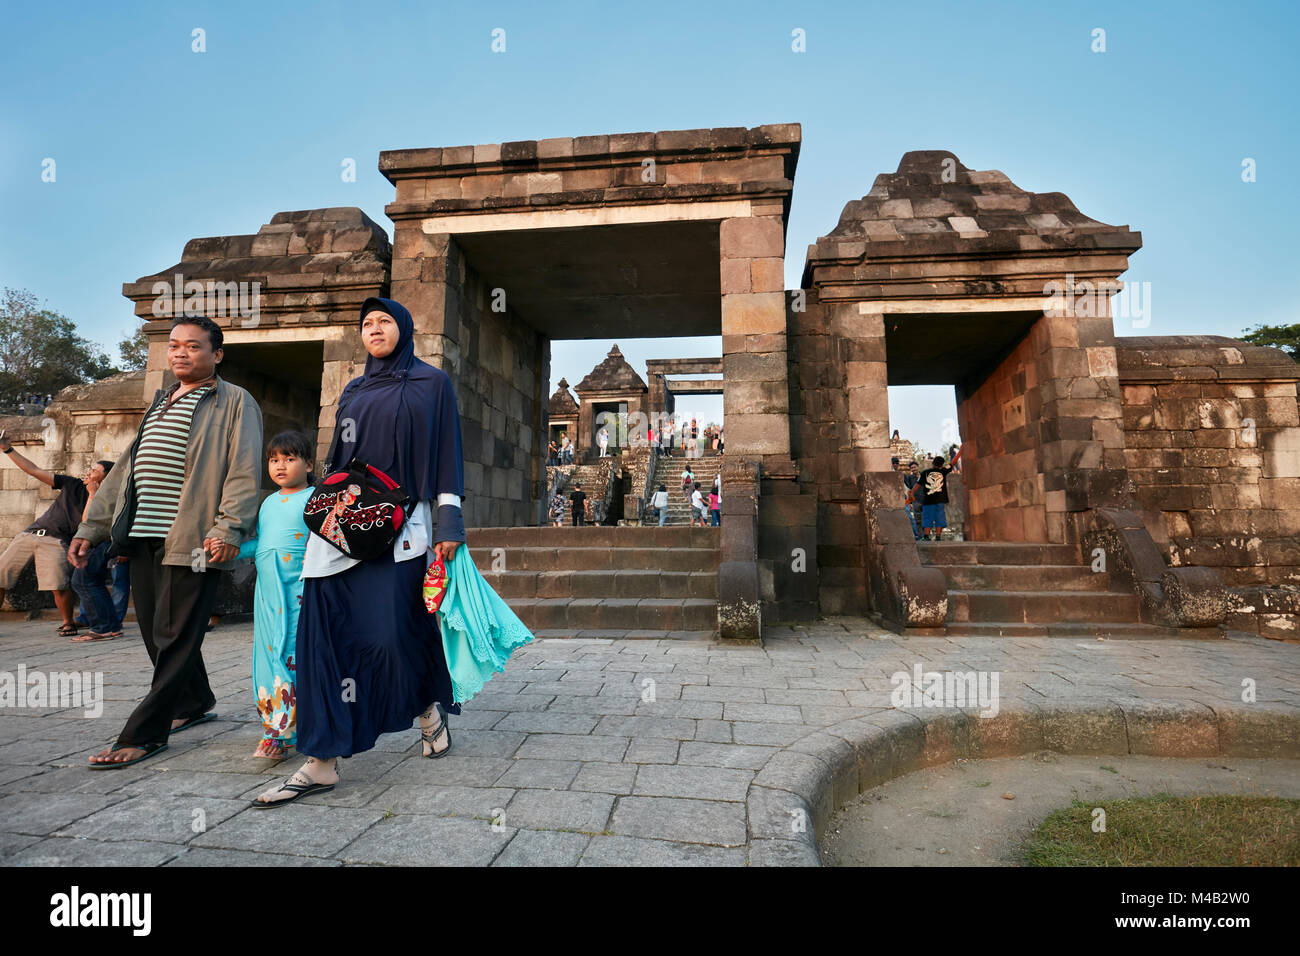 Muslim family visiting the Ratu Boko Palace compound. Special Region of Yogyakarta, Java, Indonesia. - Stock Image